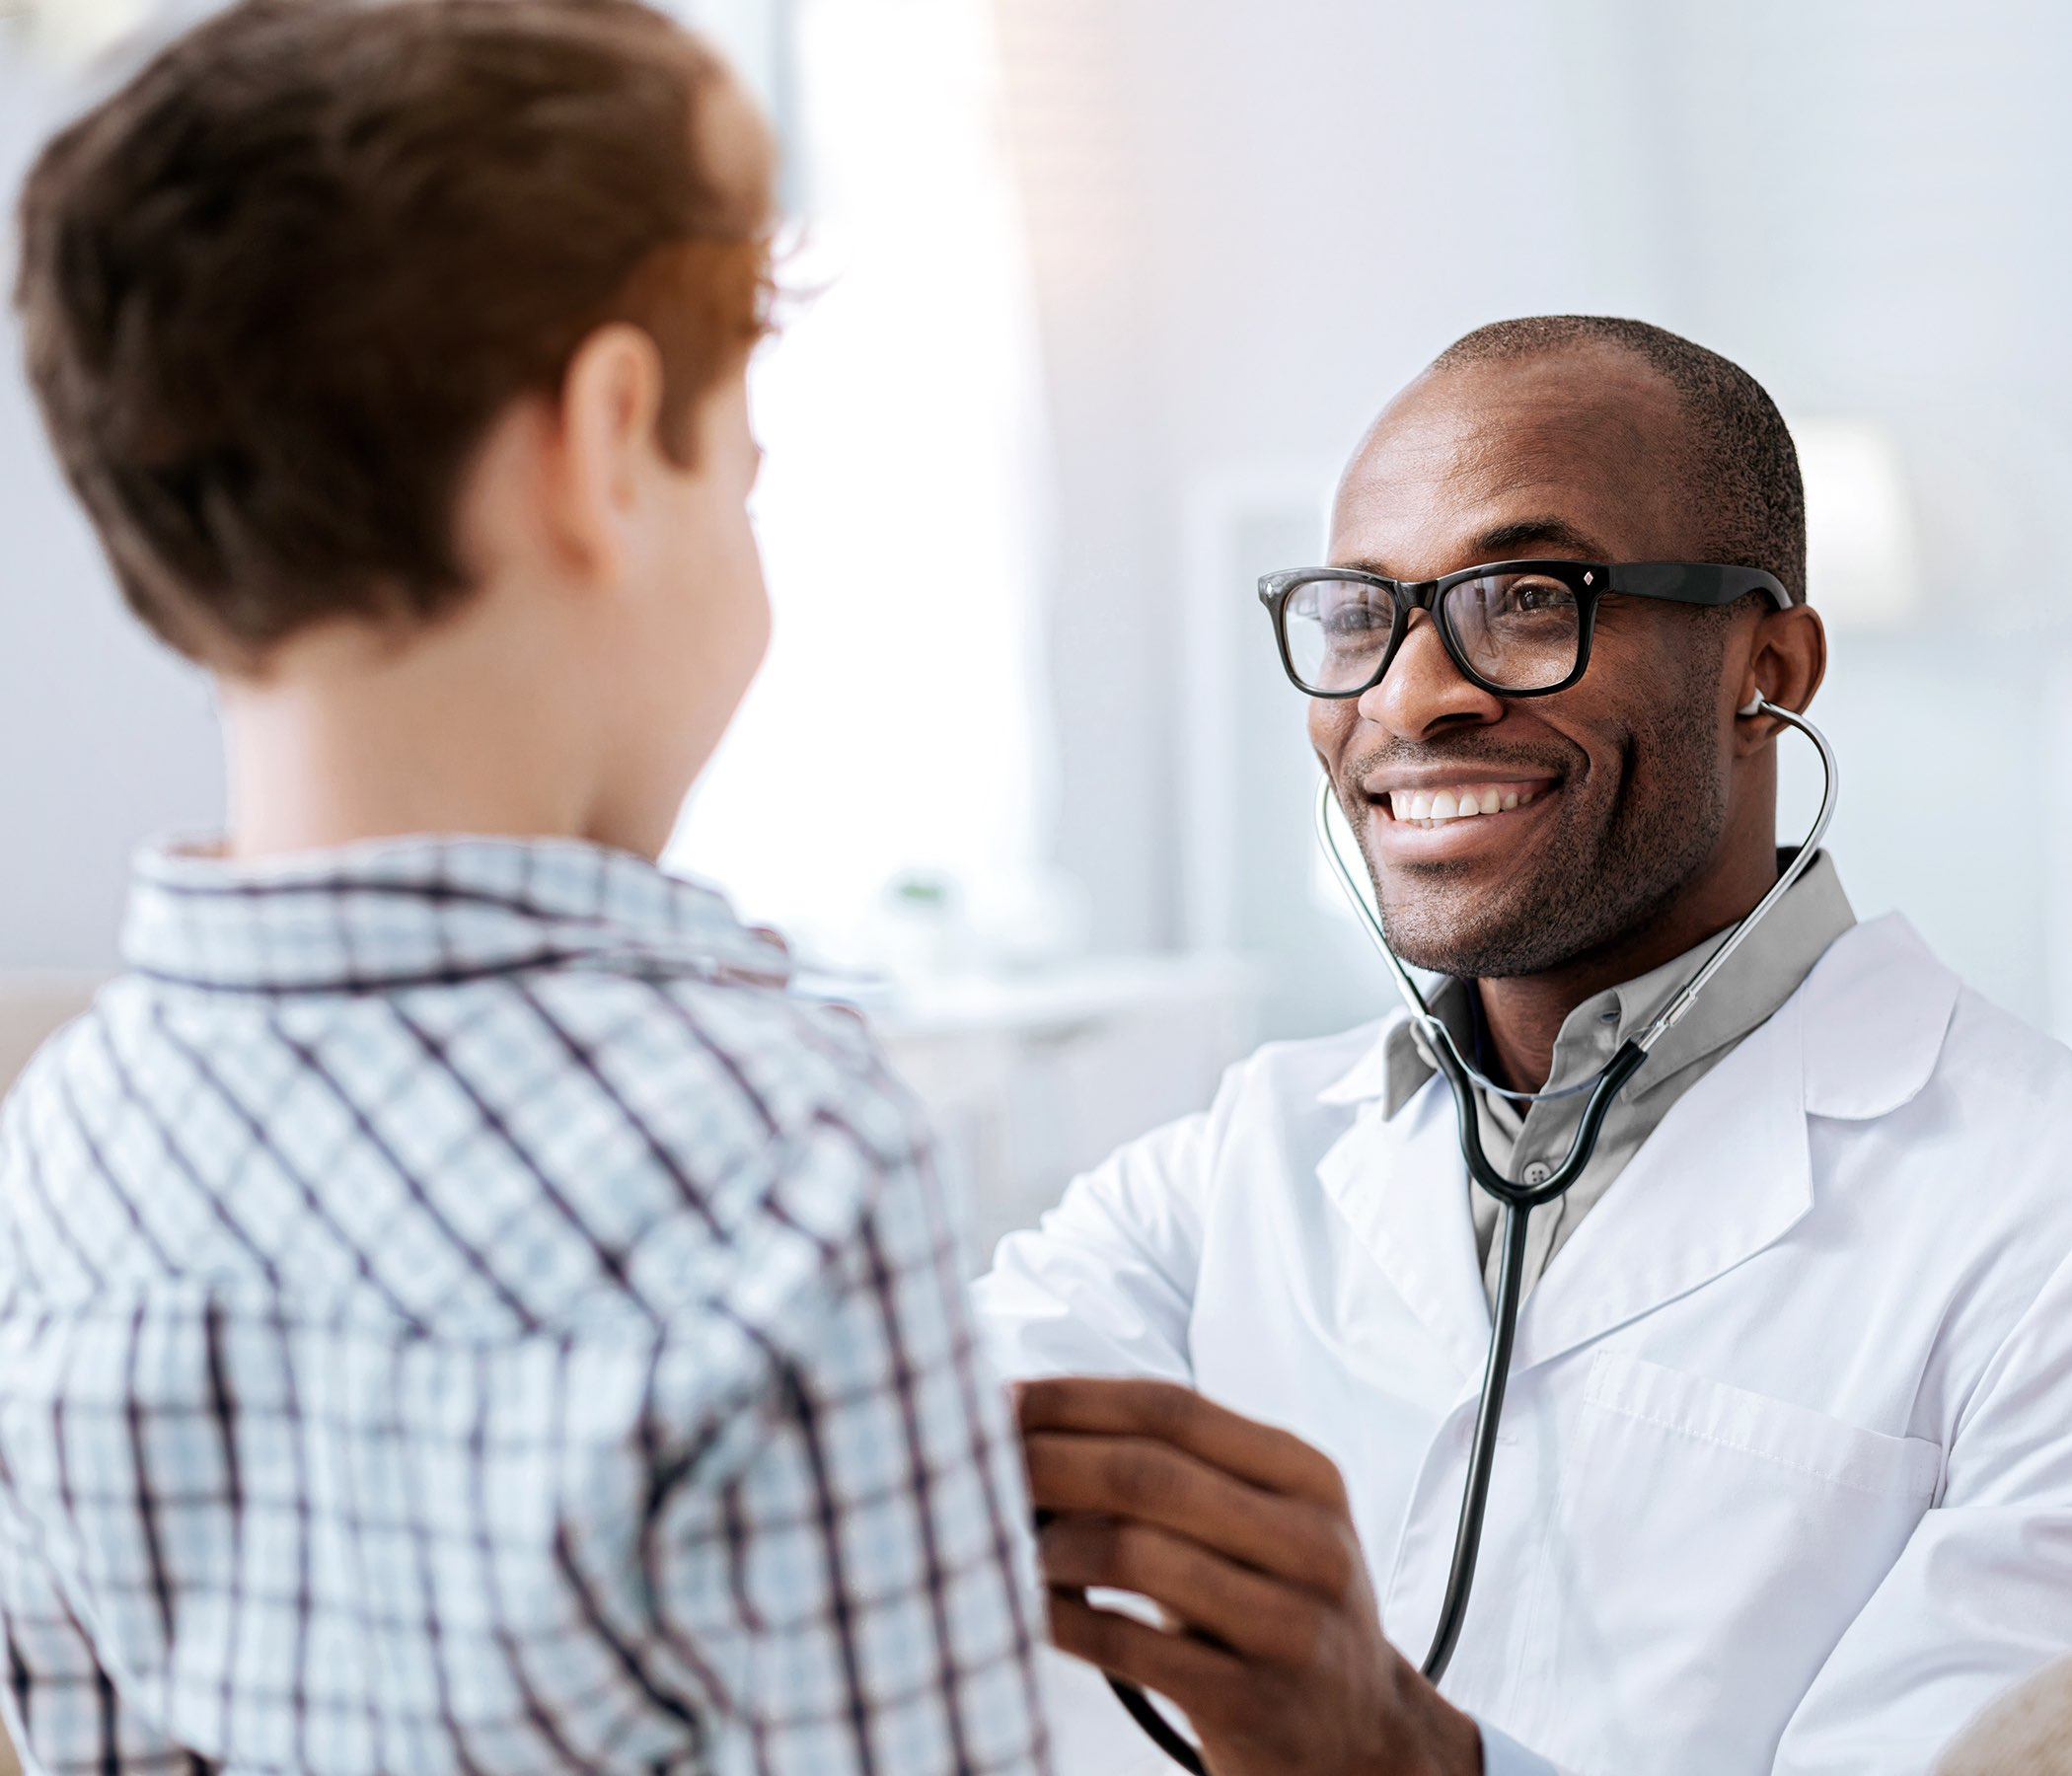 male doctor listening to boy while putting on glasses and using stethoscope